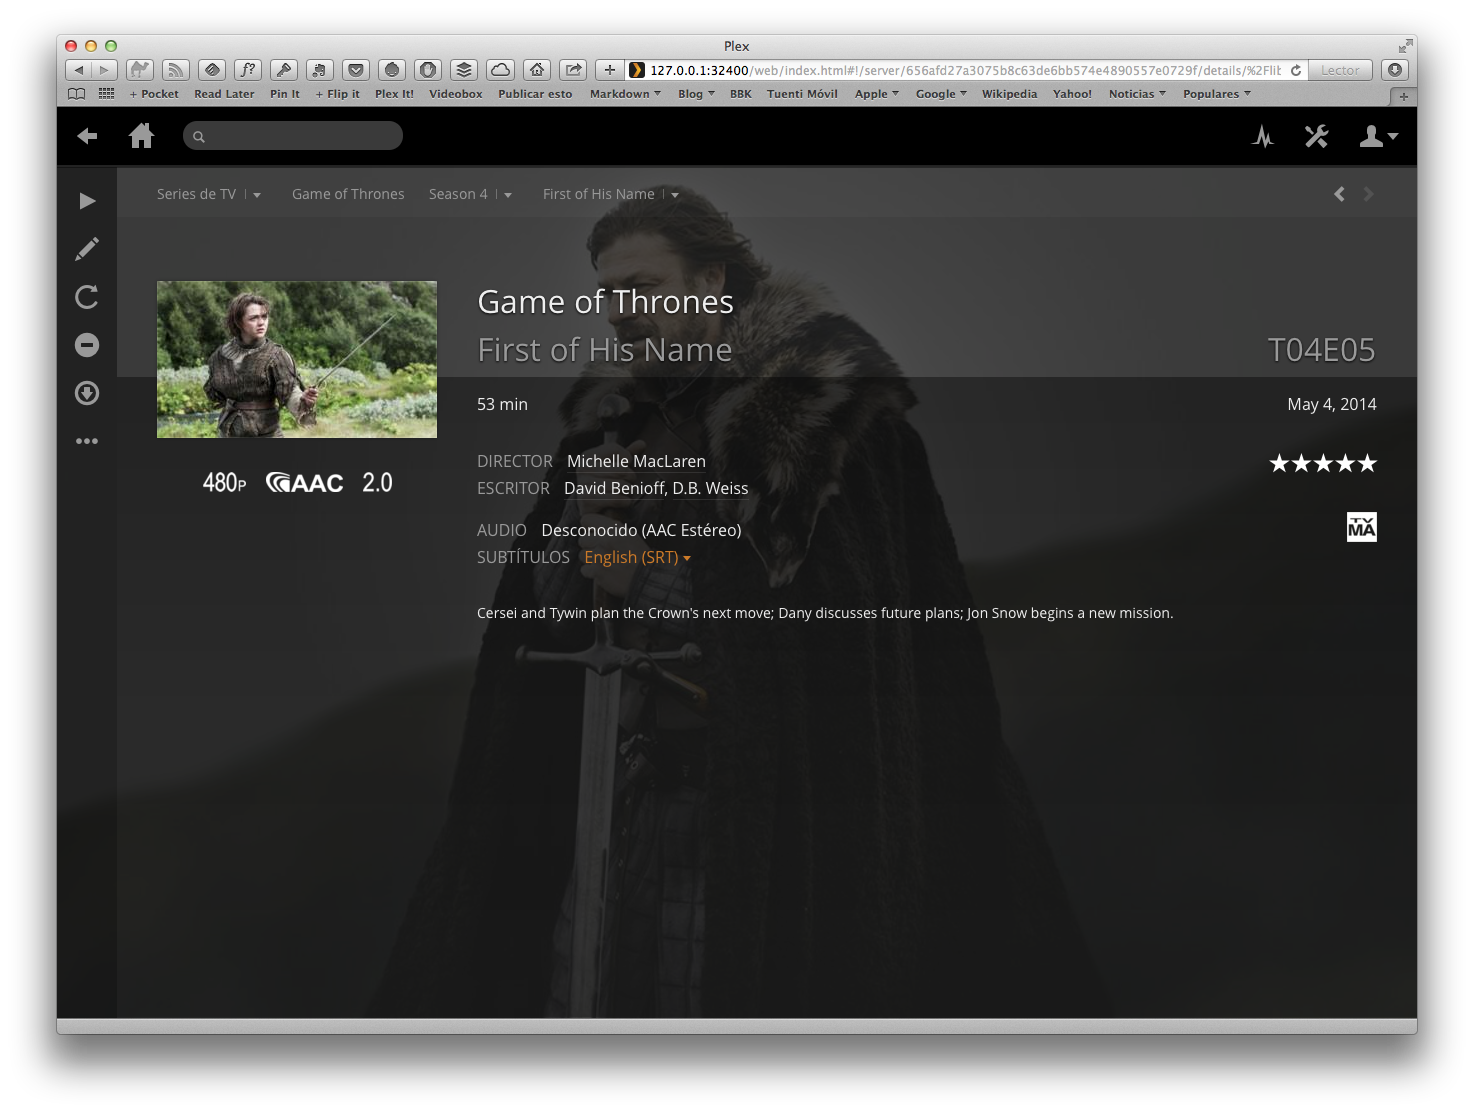 Plex - Series TV - Game of Thrones - Season 4 - Episode 5